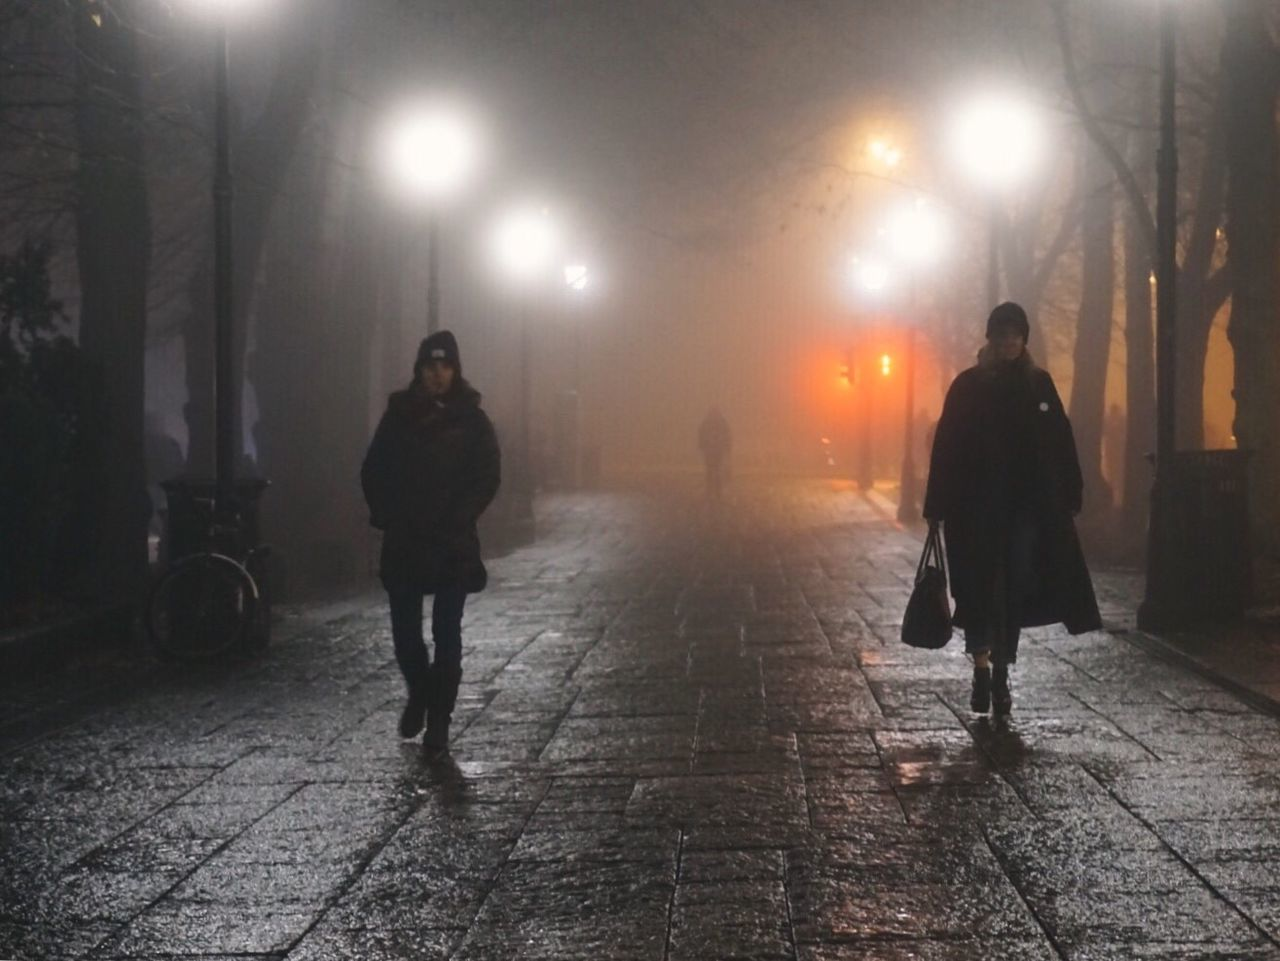 Moody evening Real People Walking Outdoors City At Night City Lights Cityscape City Life Foggy Night Foggy Nightphotography Visitoslo Oslo Norway Beautiful Destinations Winterwonderland Oslo Norway Modern Vintage Modern Vintage Photography Vintage